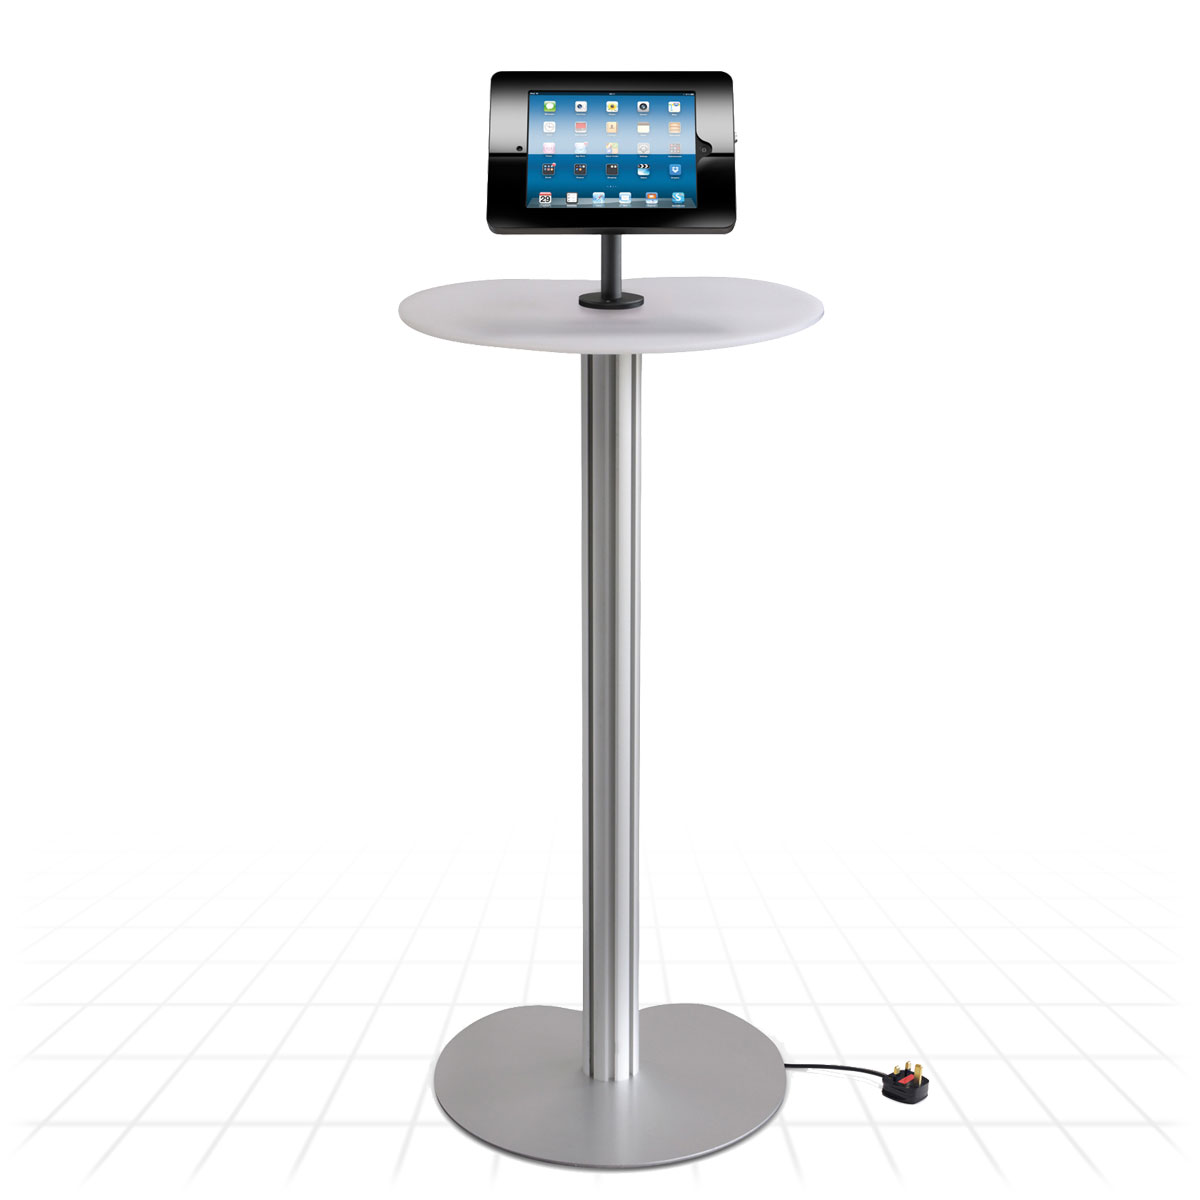 Exhibition Stand With Shelves : Podium ipad display stand tablet stands